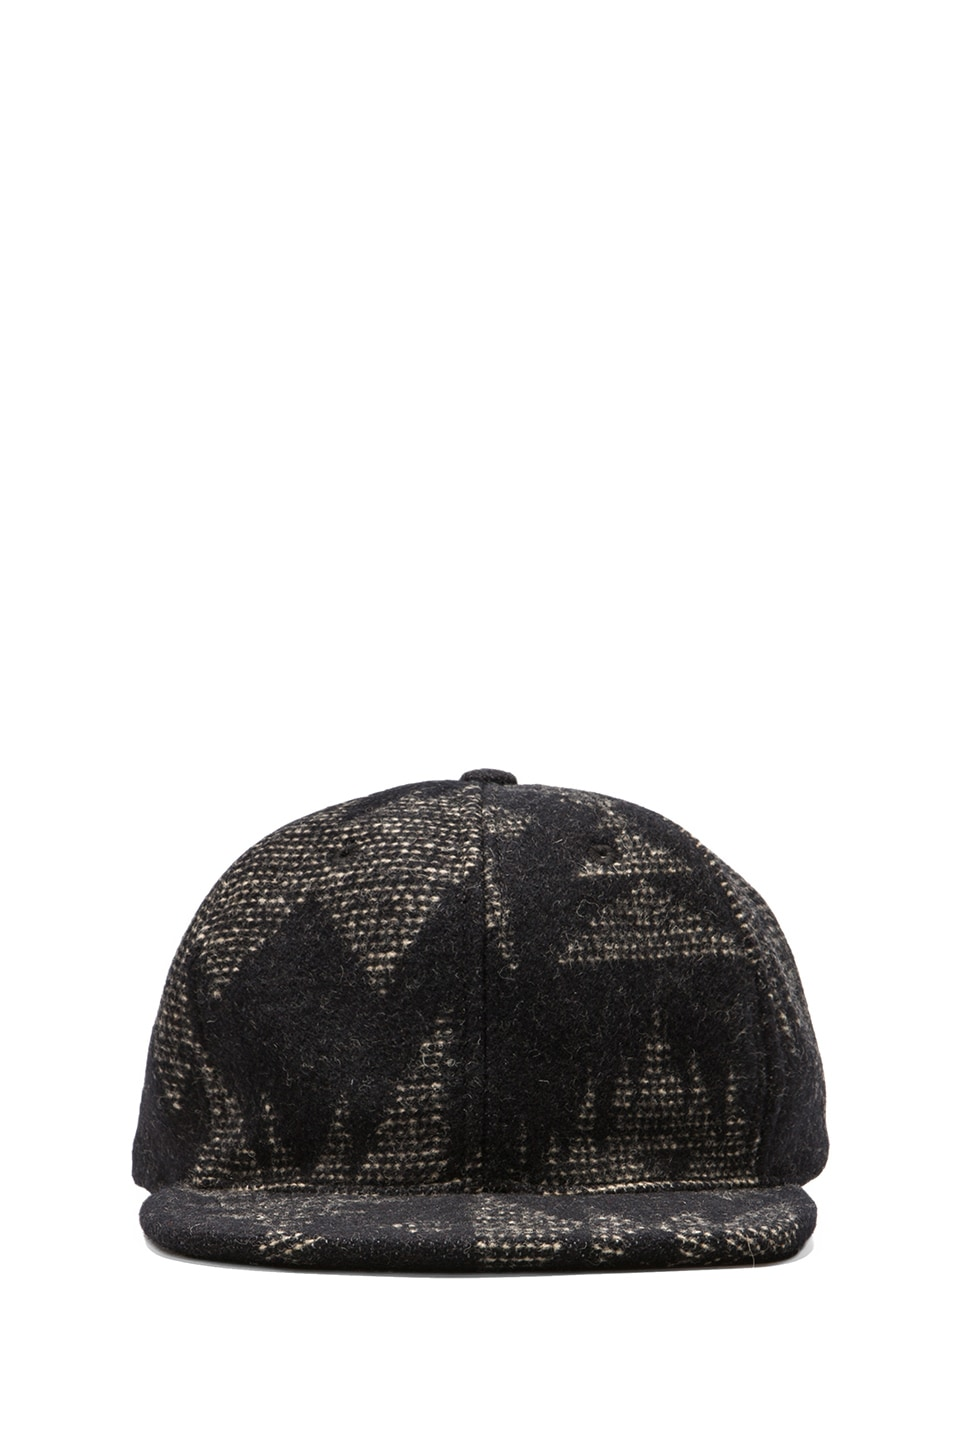 The Portland Collection by Pendleton Prineville Cap en Black Sonora